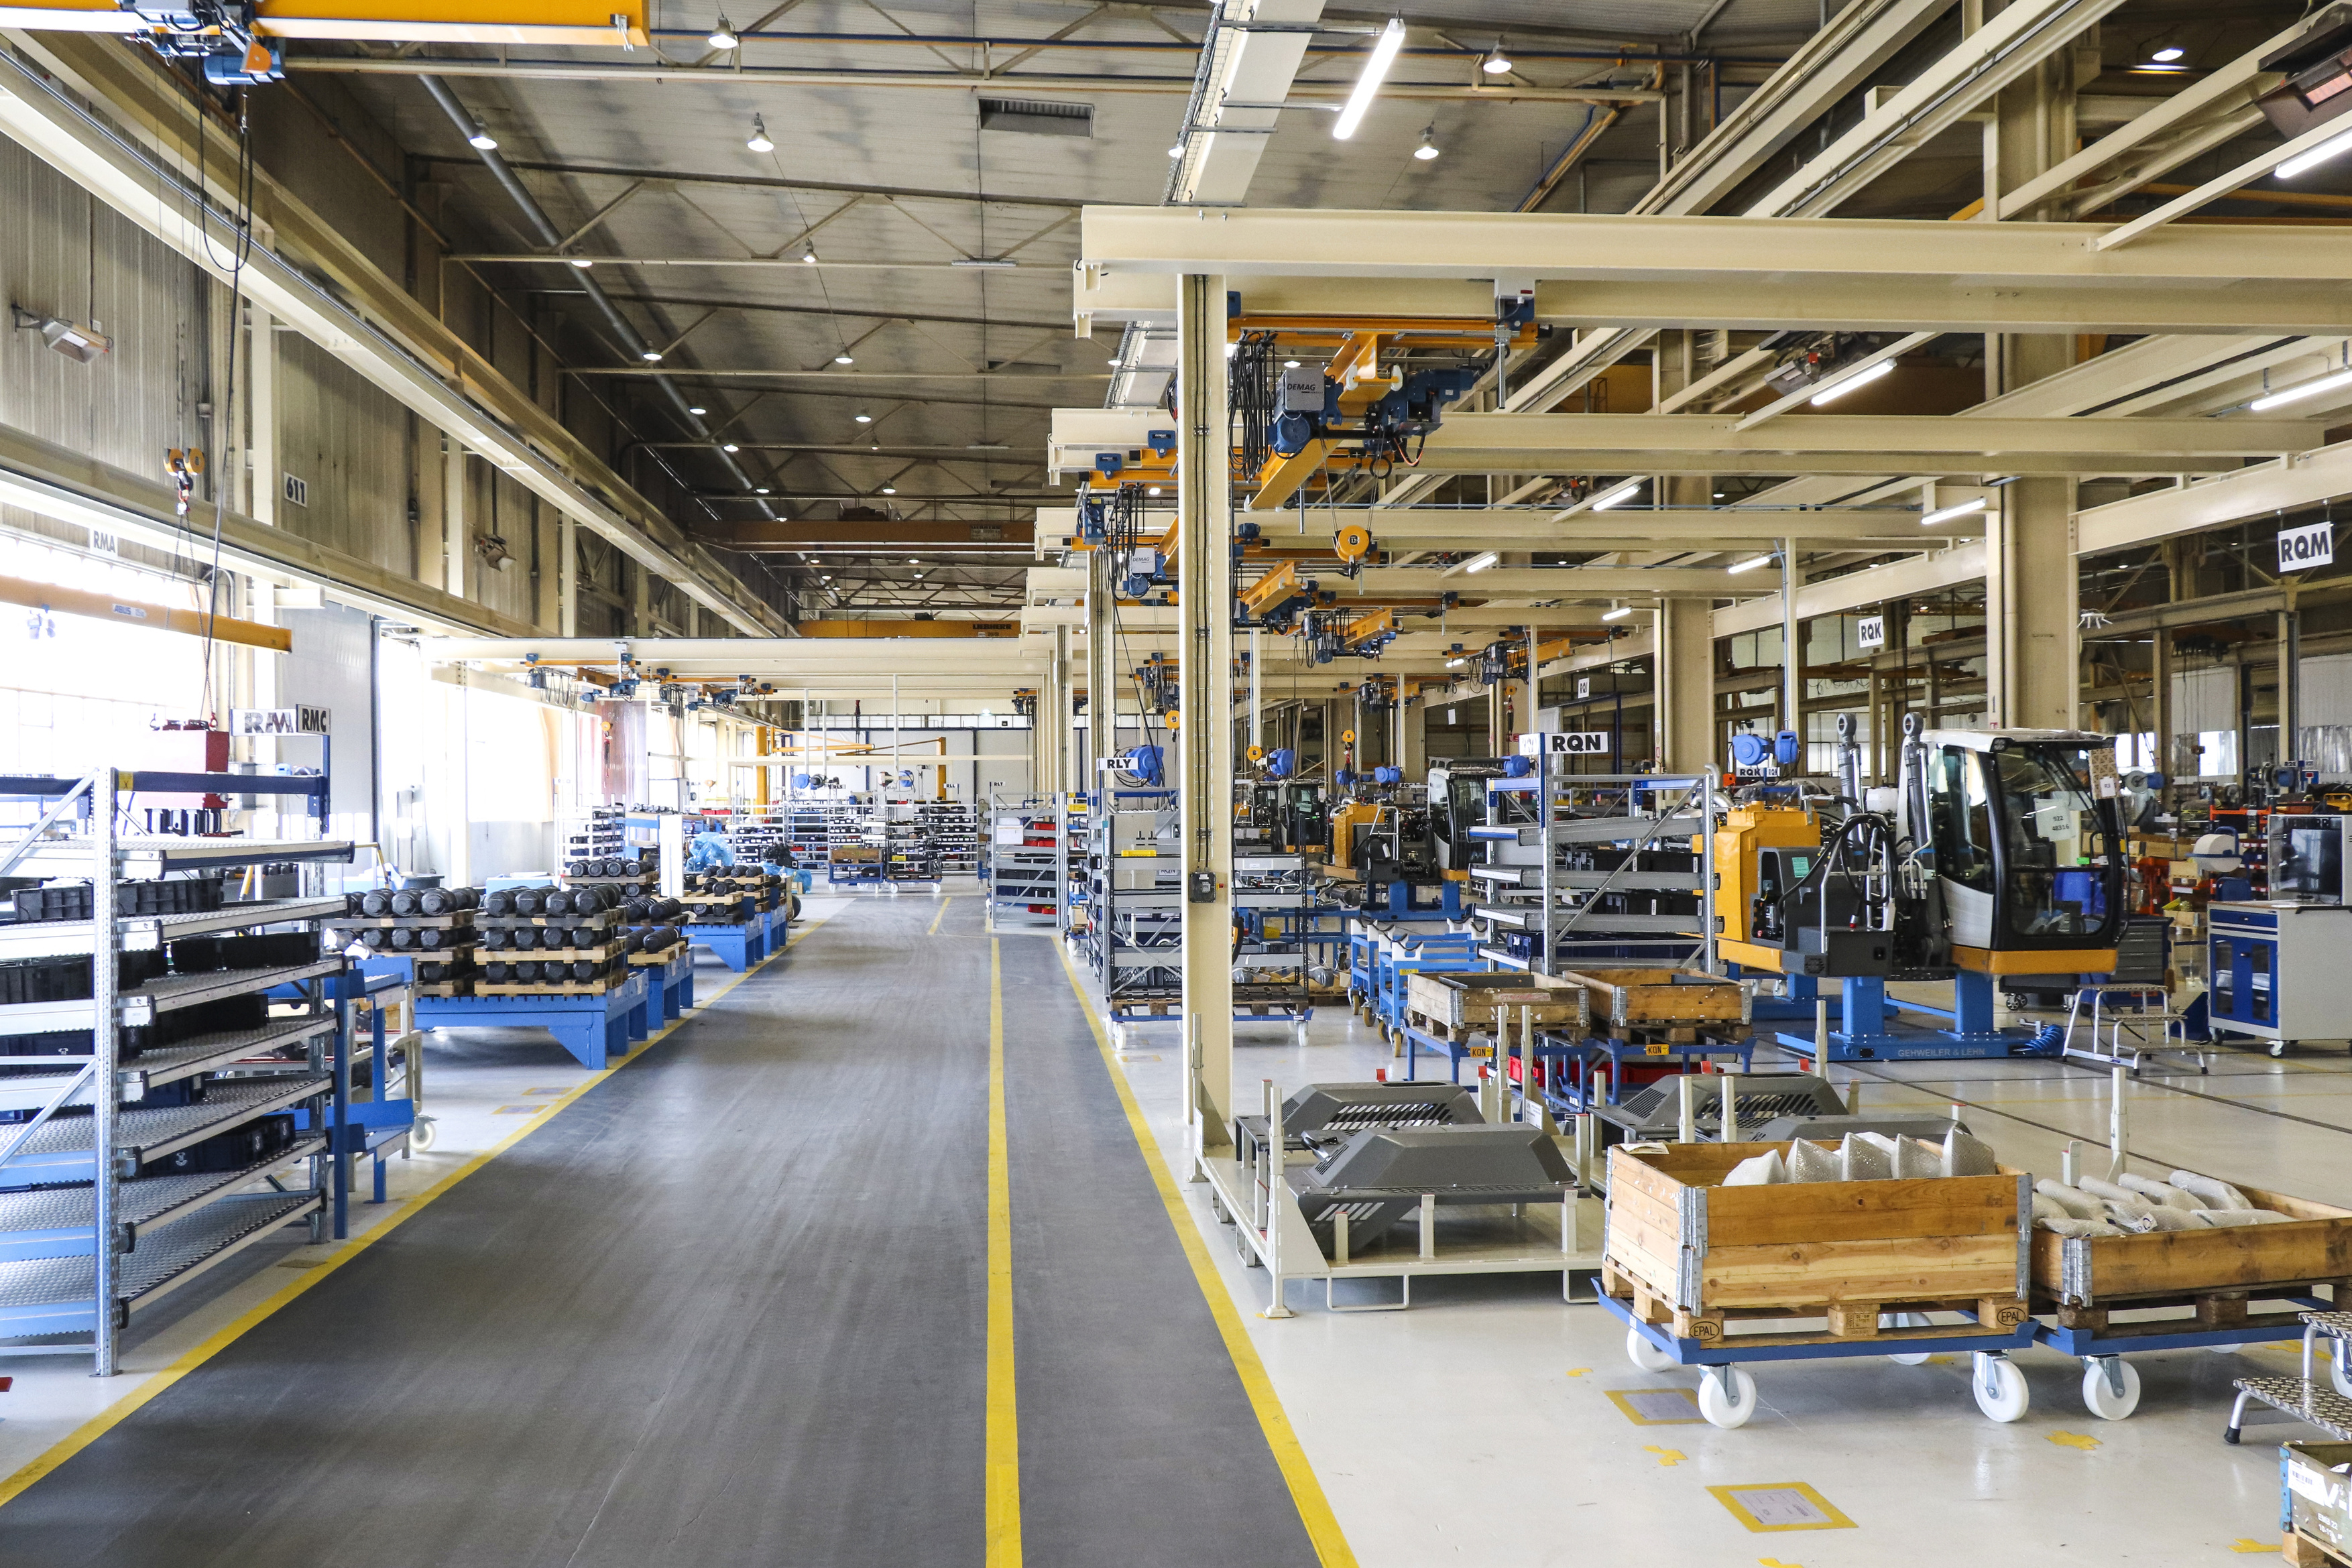 Liebherr-France SAS invests 5 million Euro in new assembly line - UK